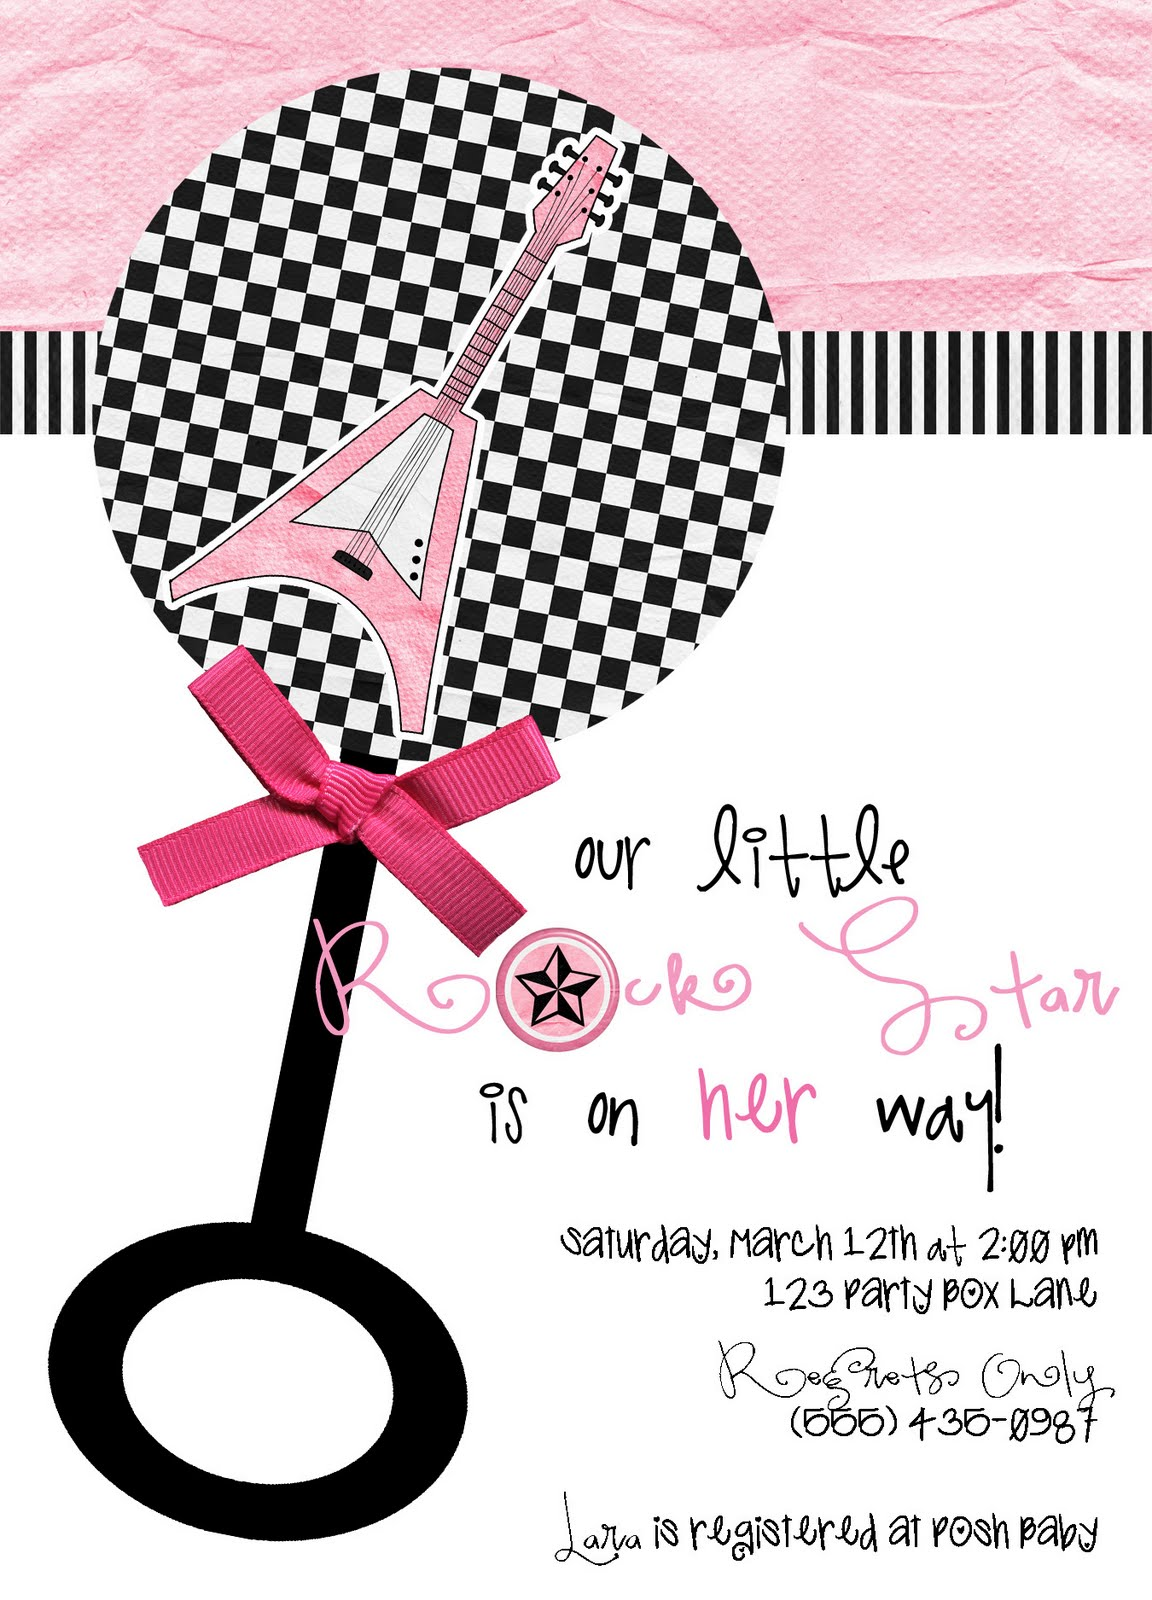 party box design rock star baby shower